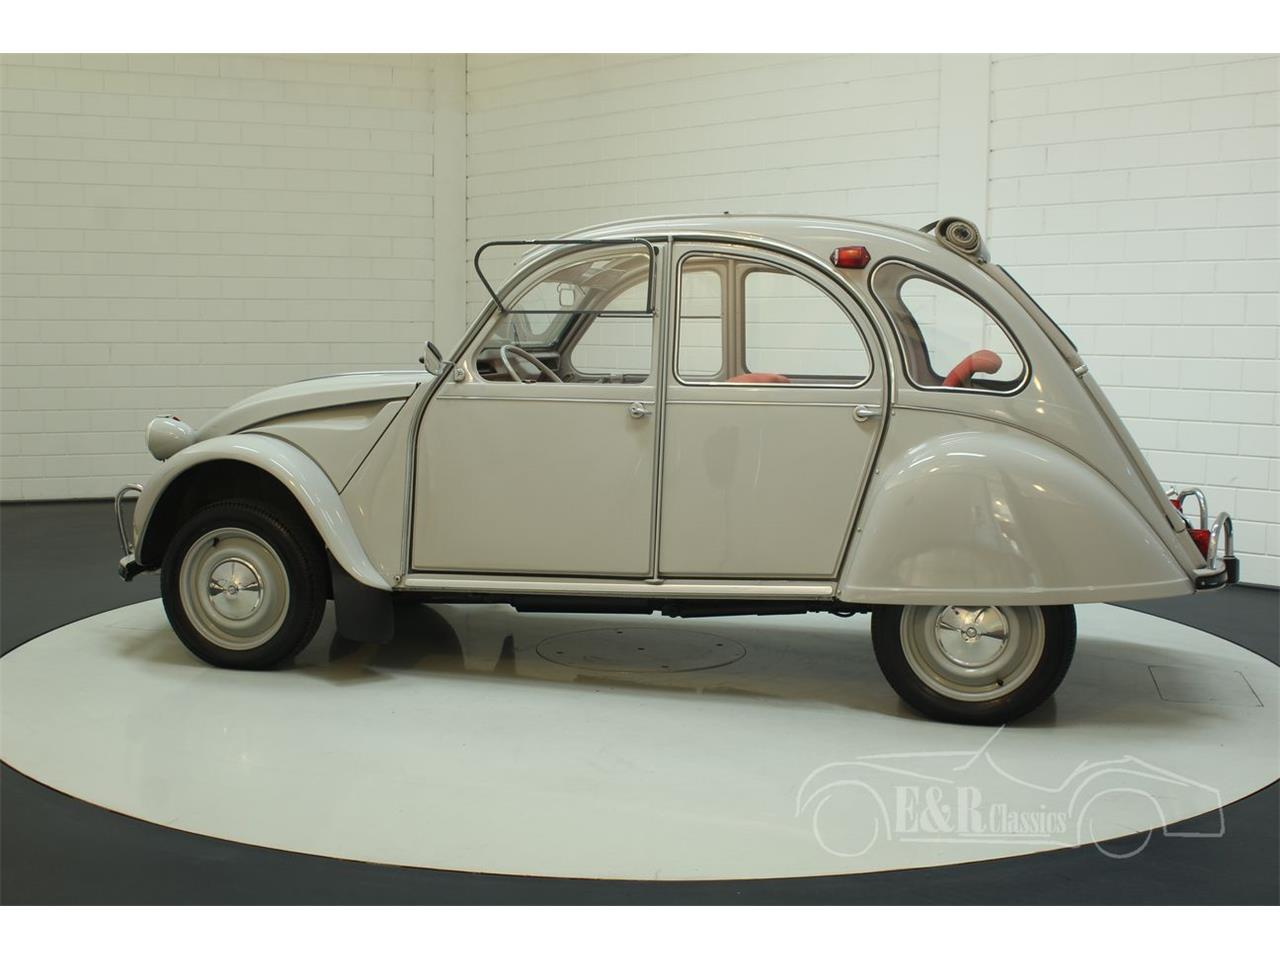 Large Picture of 1966 2CV located in - Keine Angabe - - $22,550.00 Offered by E & R Classics - PGSV